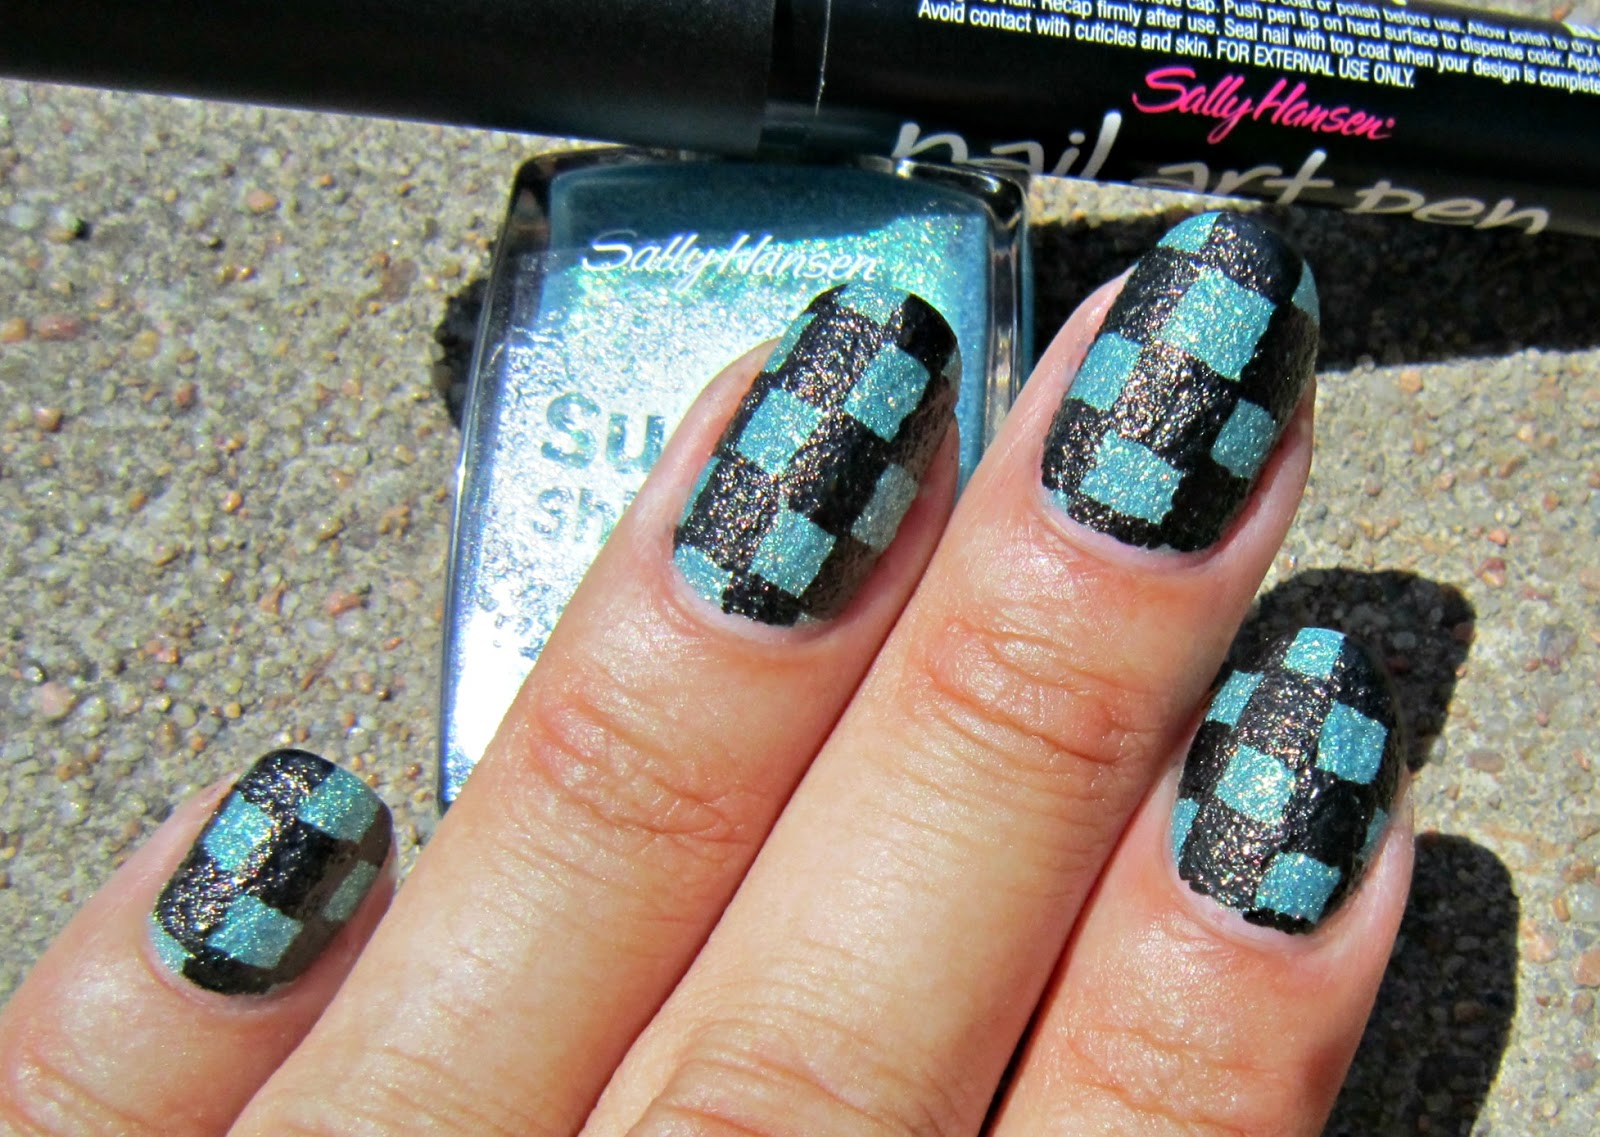 Concrete and nail polish nail art pen grab onto the nail art pen and keep it in place without a topcoat though and it turns out i was right fun experiment that turned out pretty great prinsesfo Images